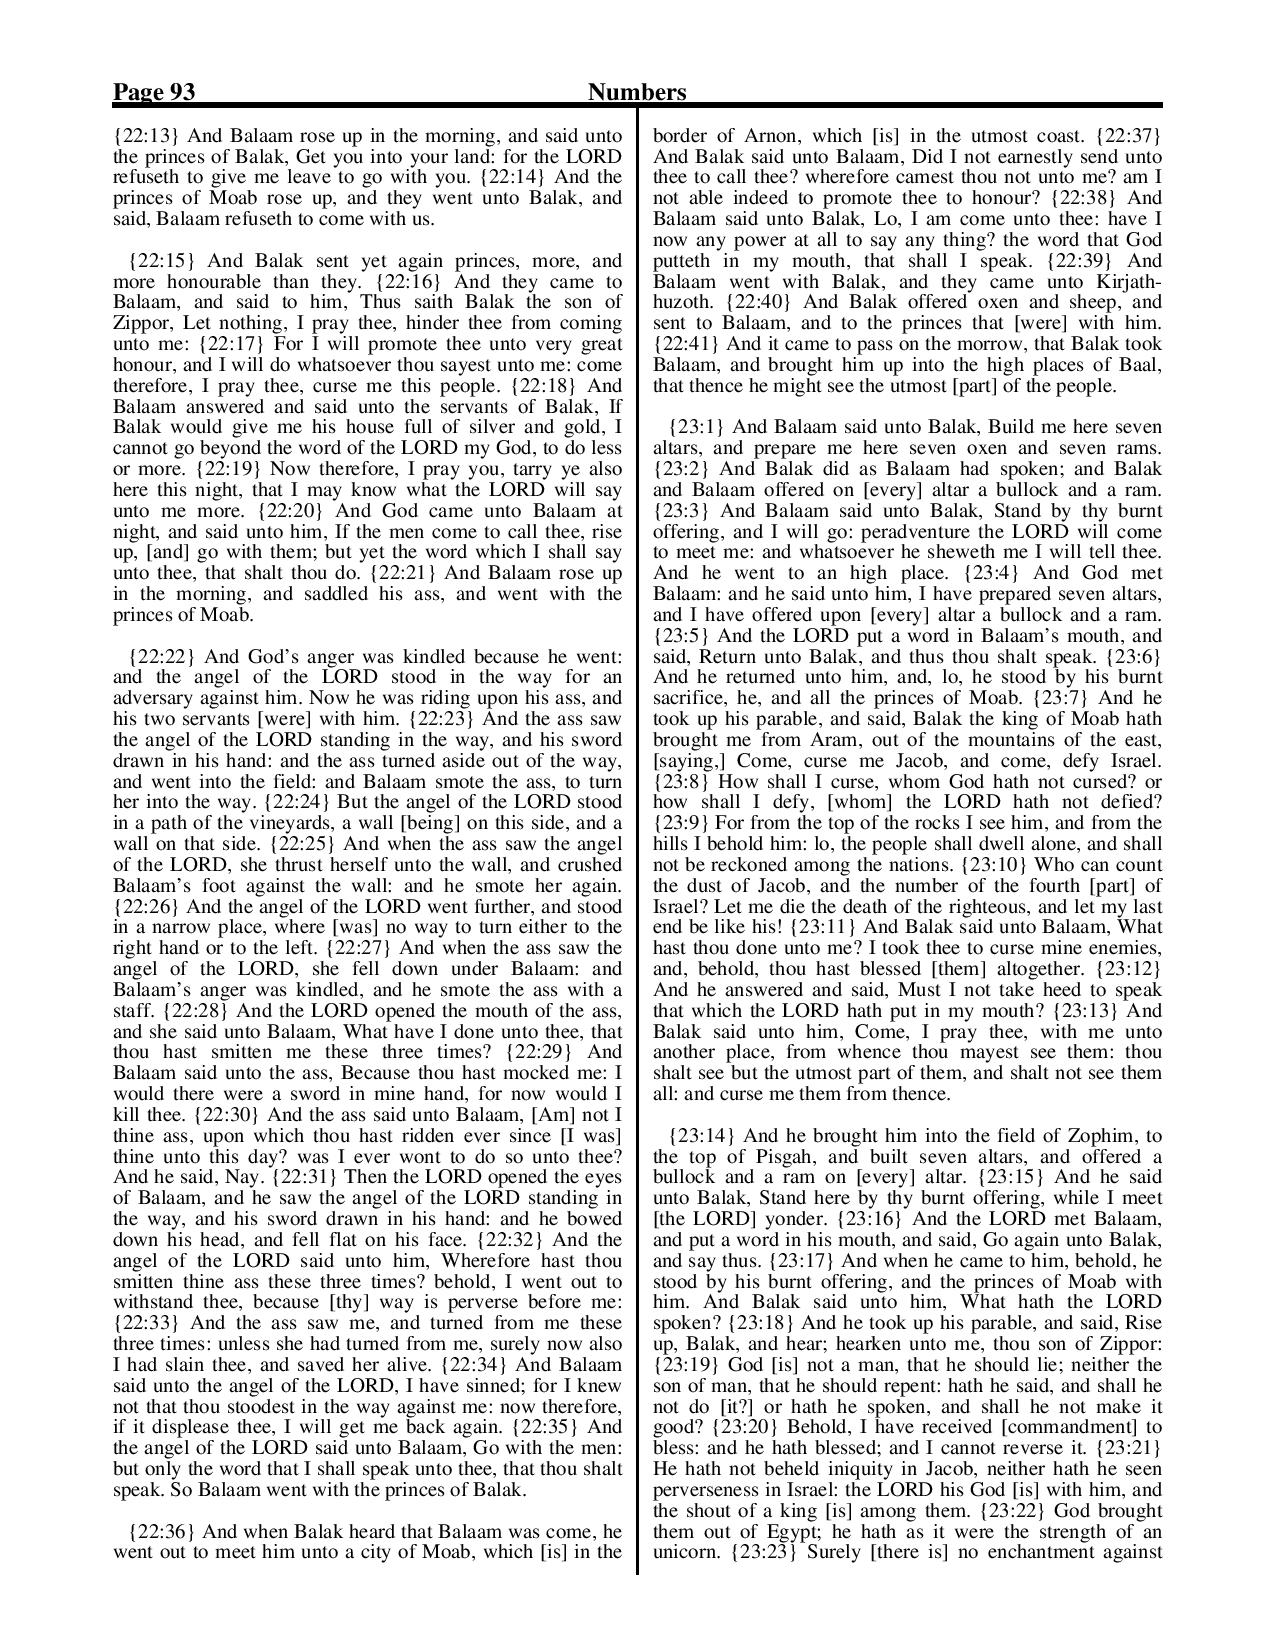 King-James-Bible-KJV-Bible-PDF-page-114